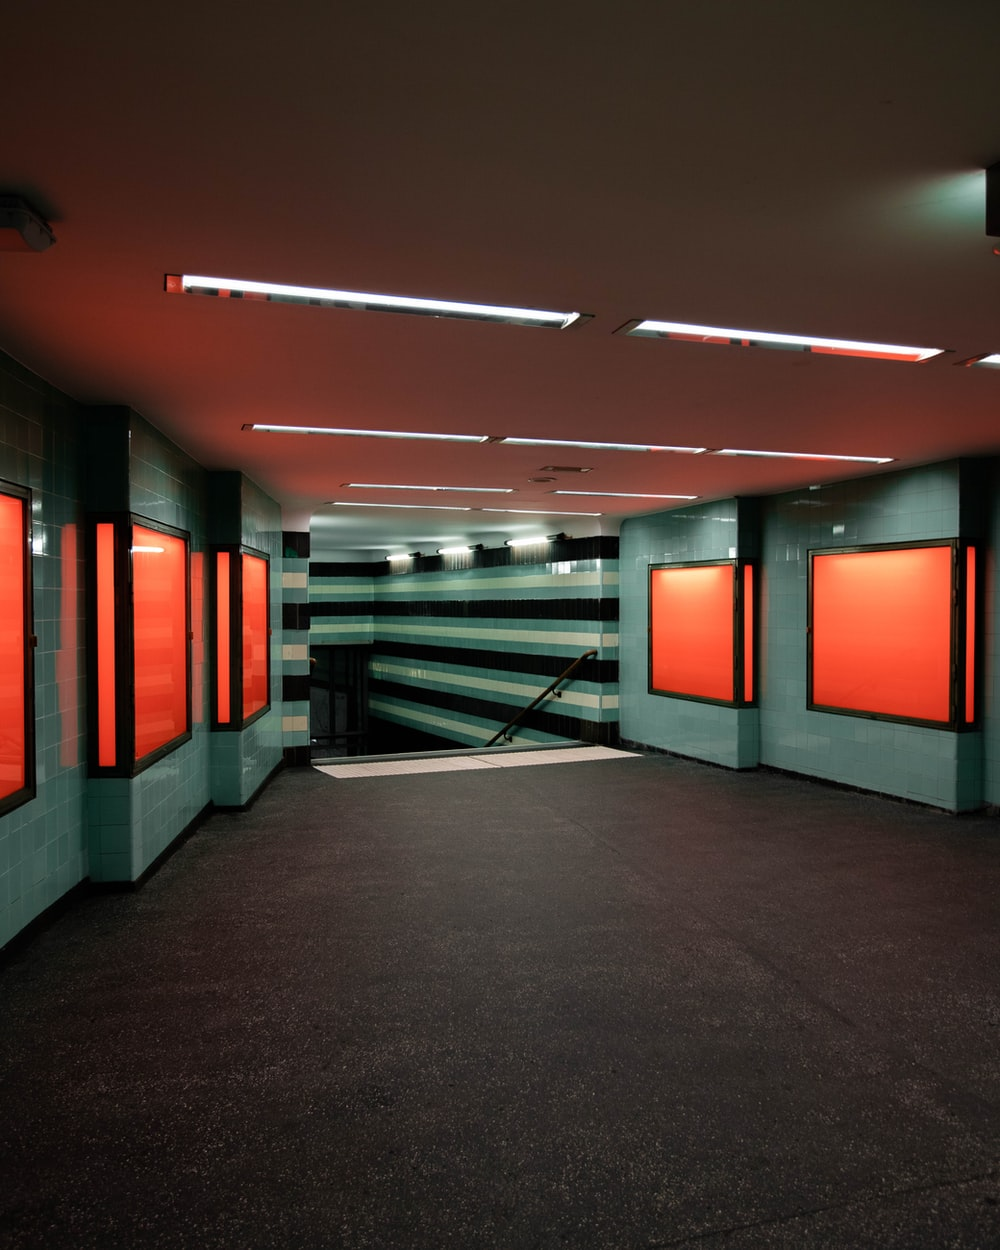 red and black hallway with red walls